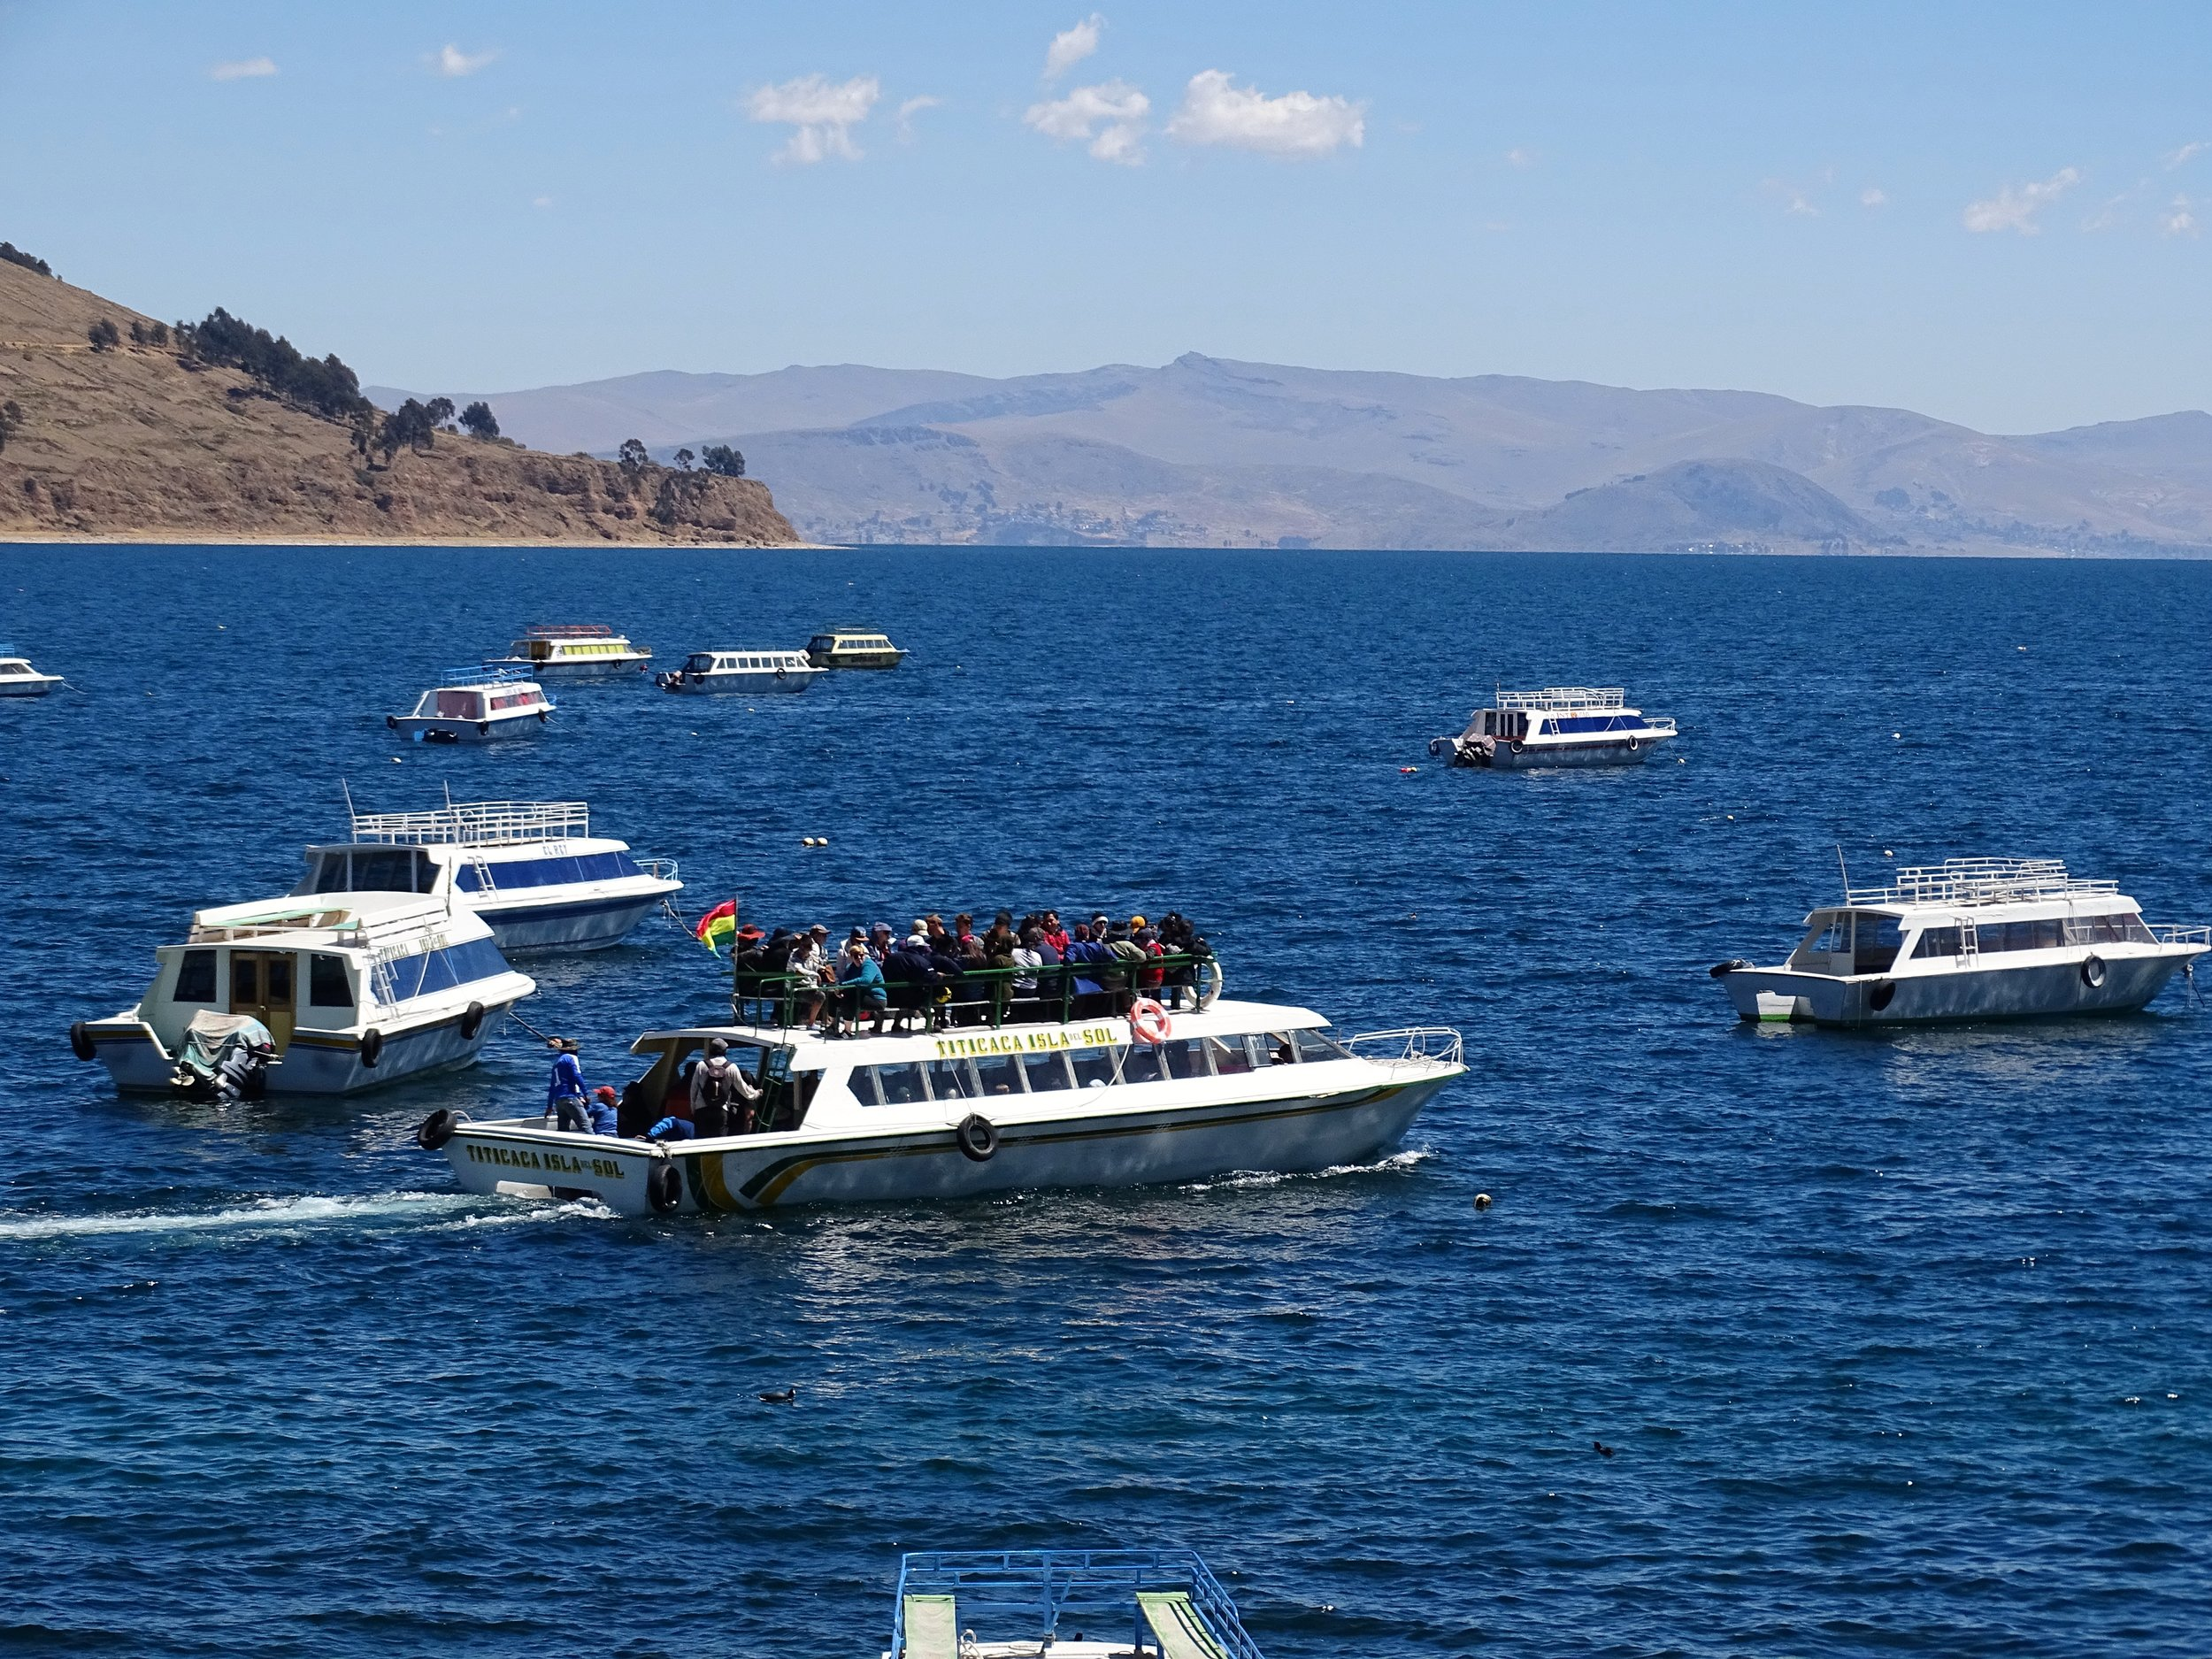 The tour boat out to Isla del Sol was incredibly overloaded and top-heavy in my view.  But hey, we're in Bolivia.